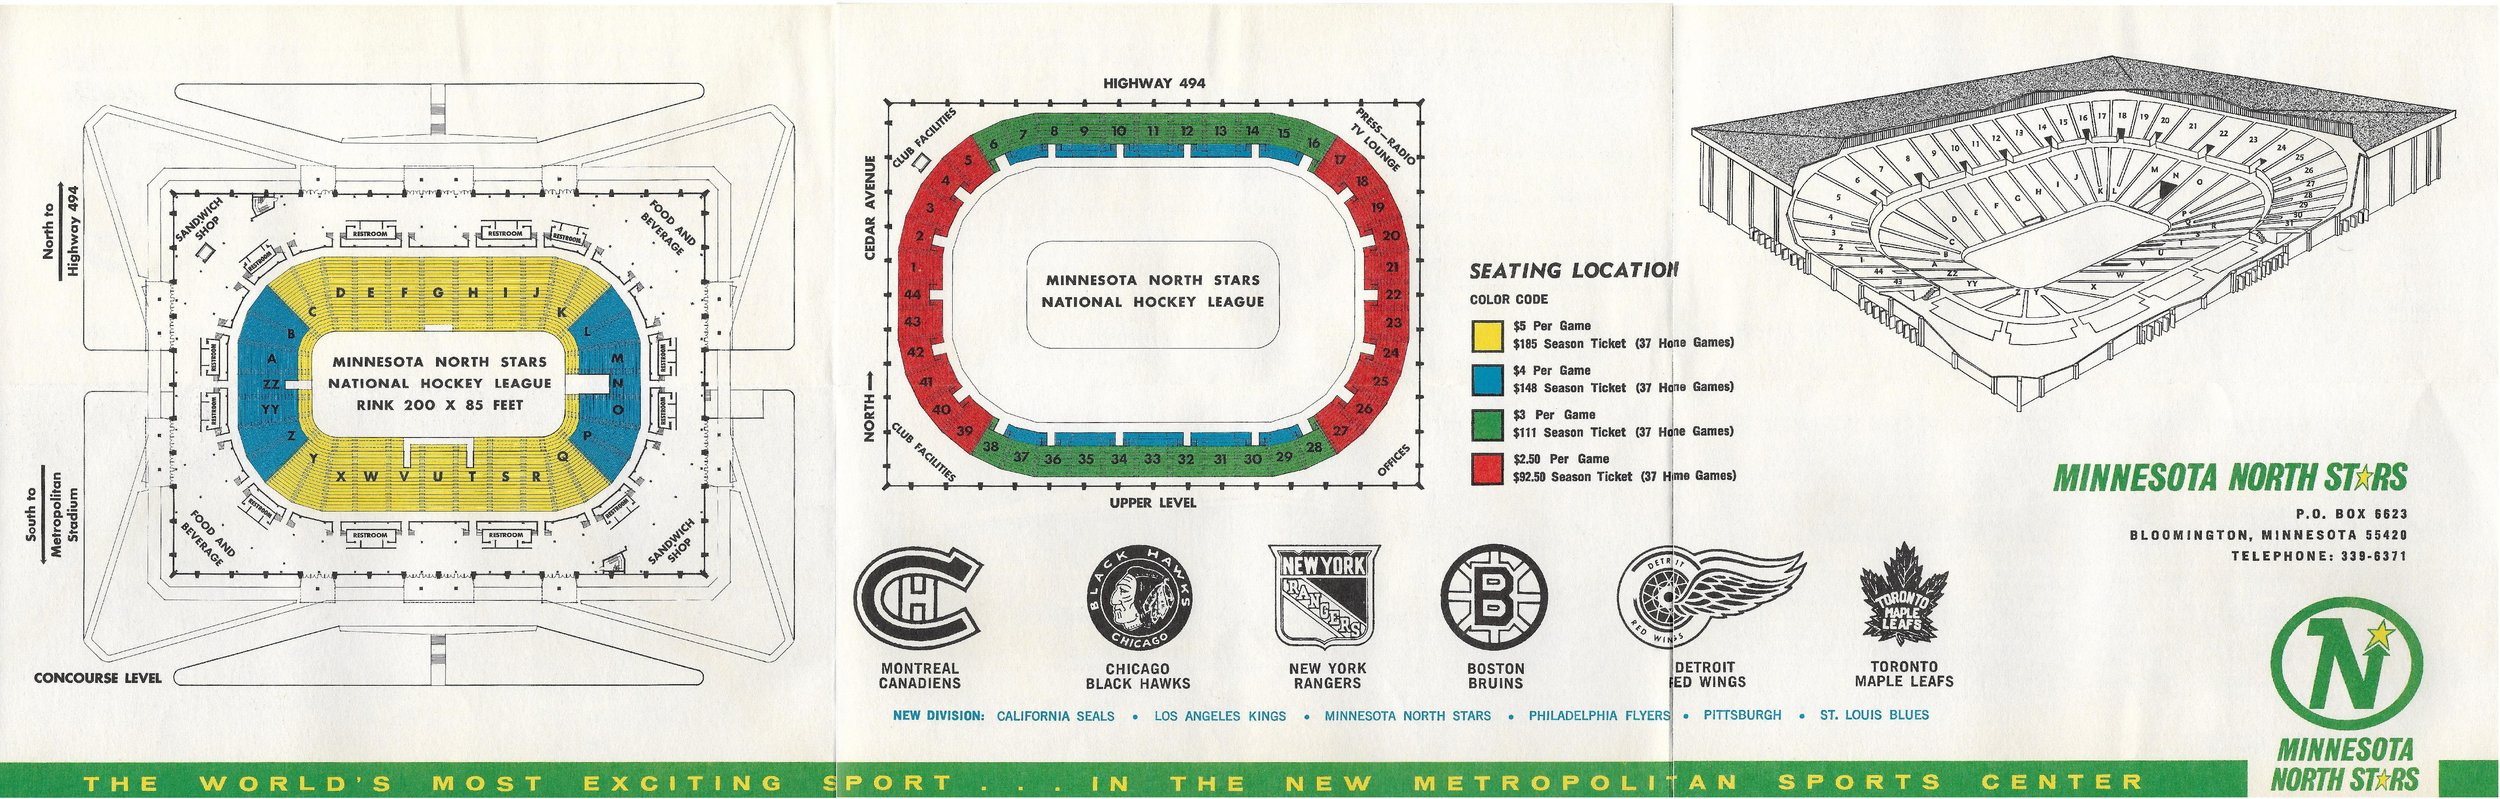 North_Stars_1966-1967_Tickets_Brochure-2.jpg